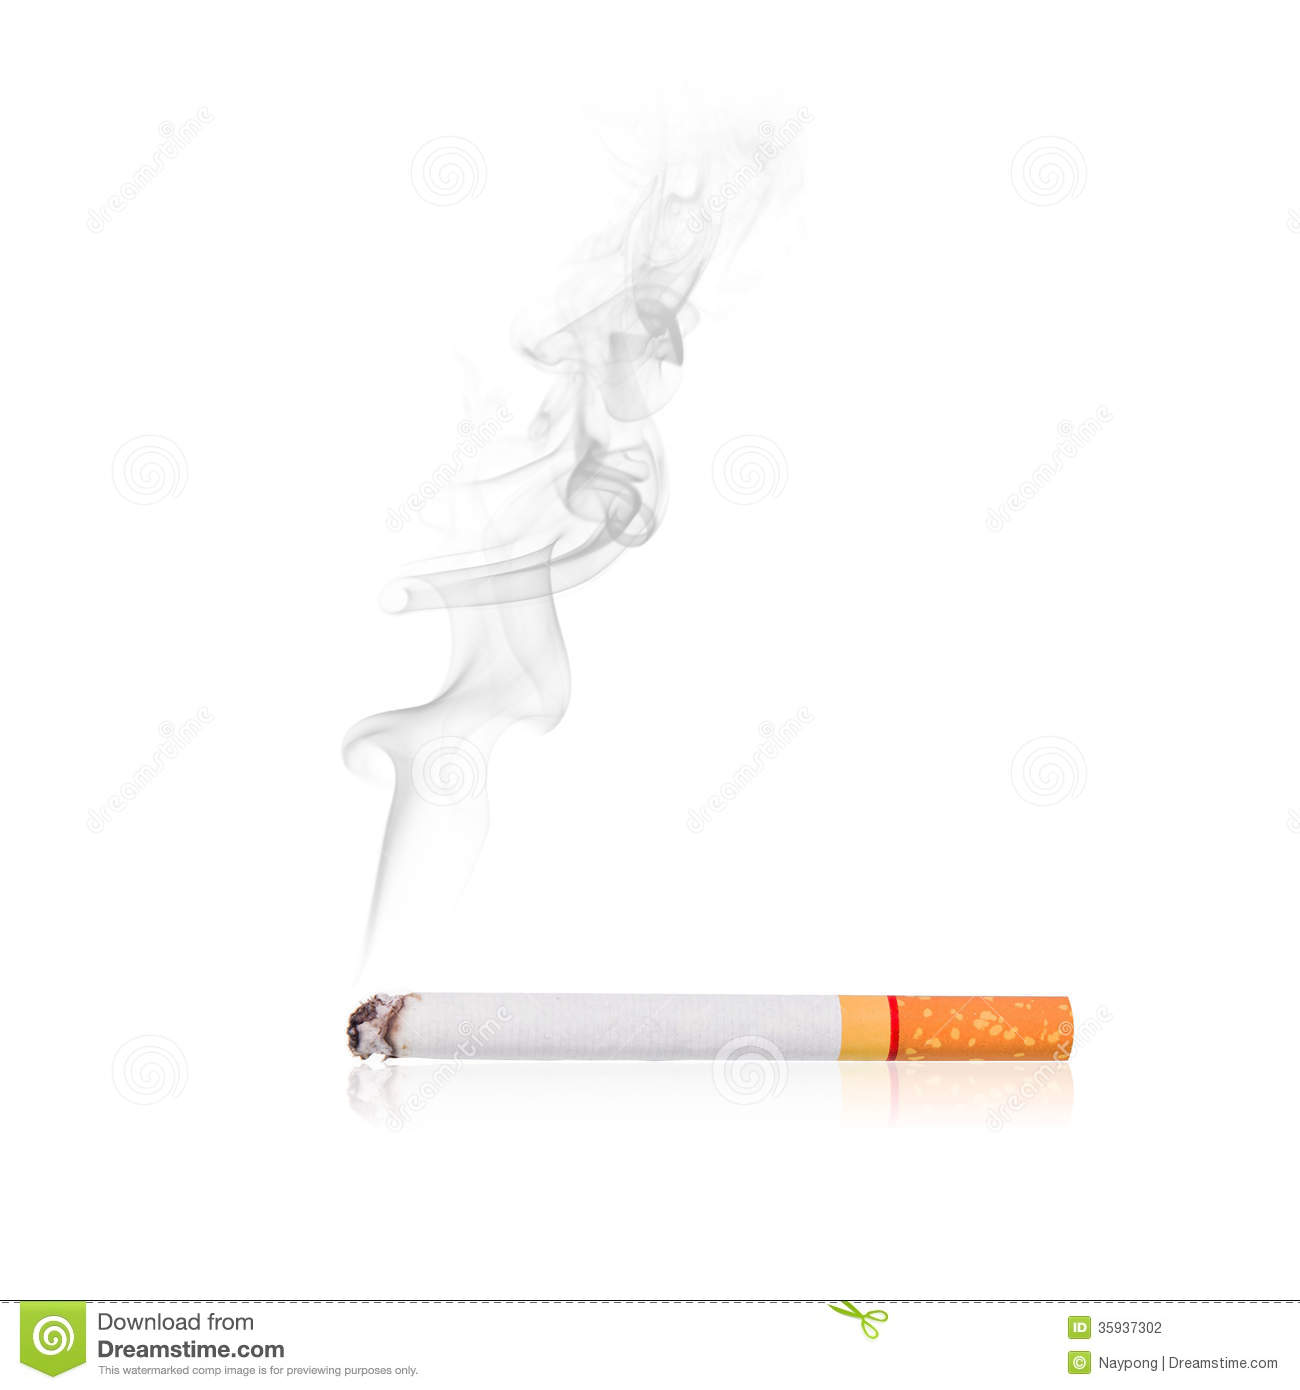 an analysis of smoking cigarettes Exp toxicol pathol 2005 jul57 suppl 1:43-73 analysis of complex mixtures-- cigarette smoke borgerding m(1), klus h author information: (1)rj reynolds.